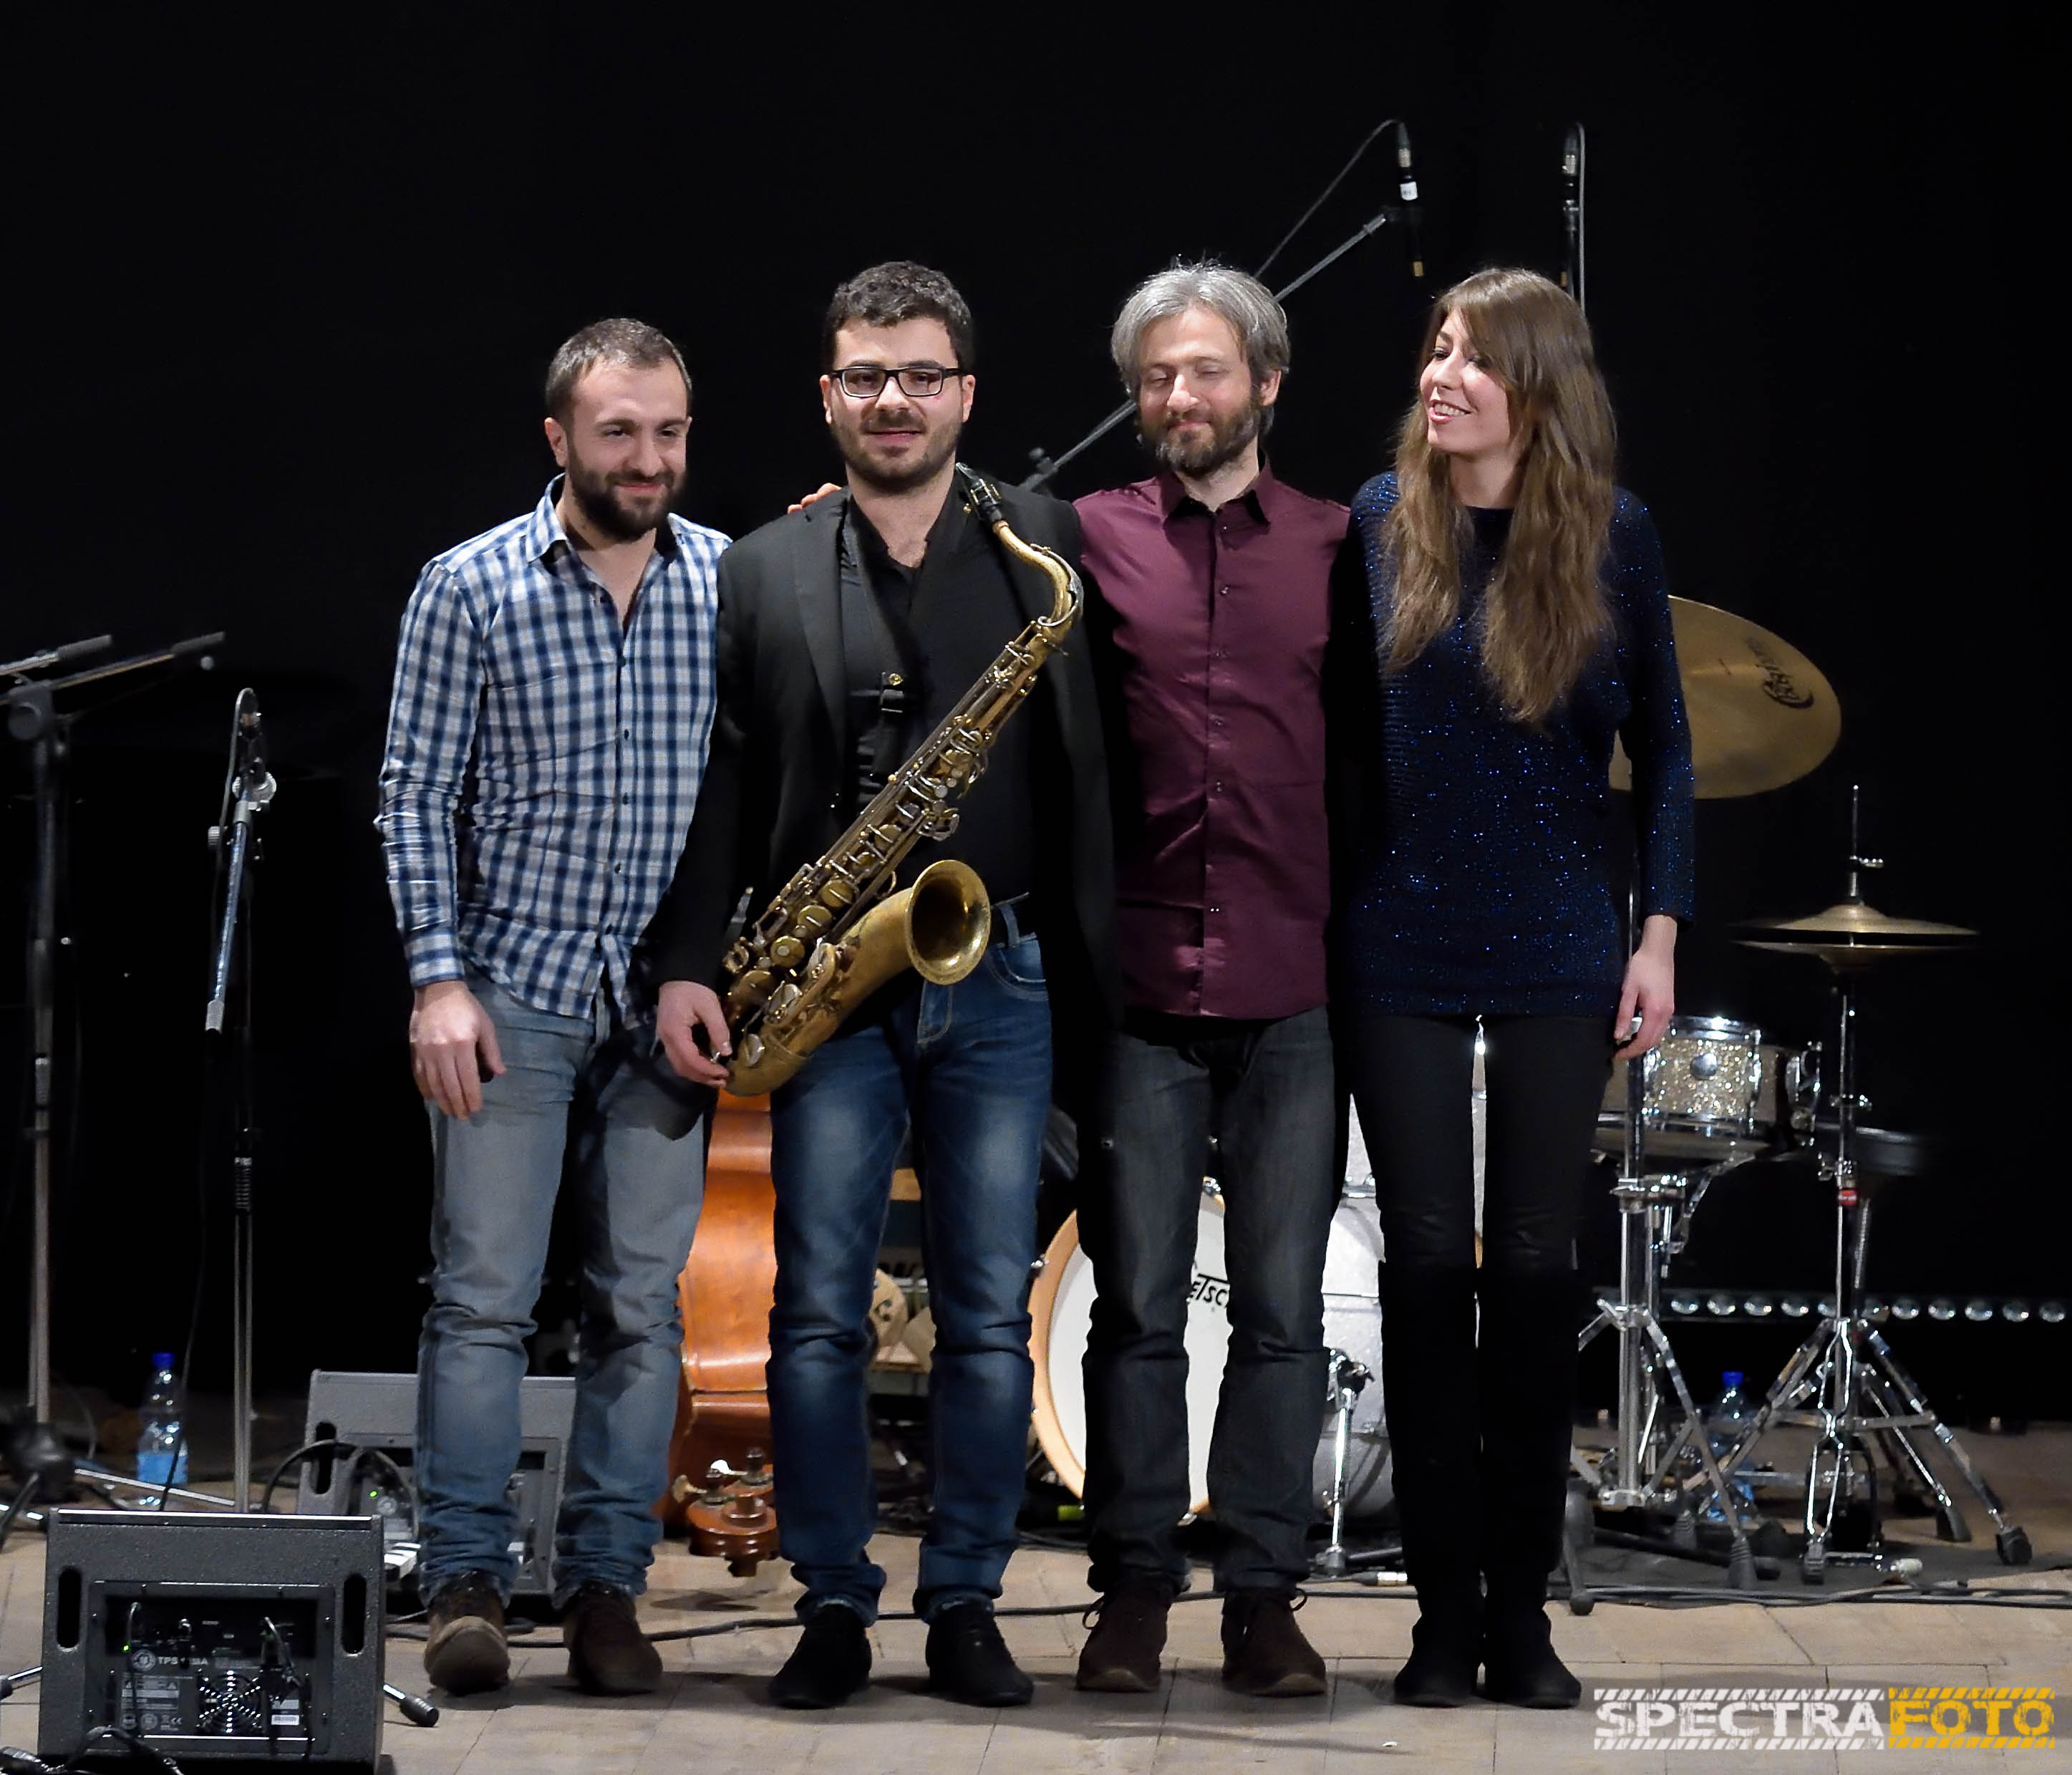 MAFRO QUARTET@Summarte in Jazz